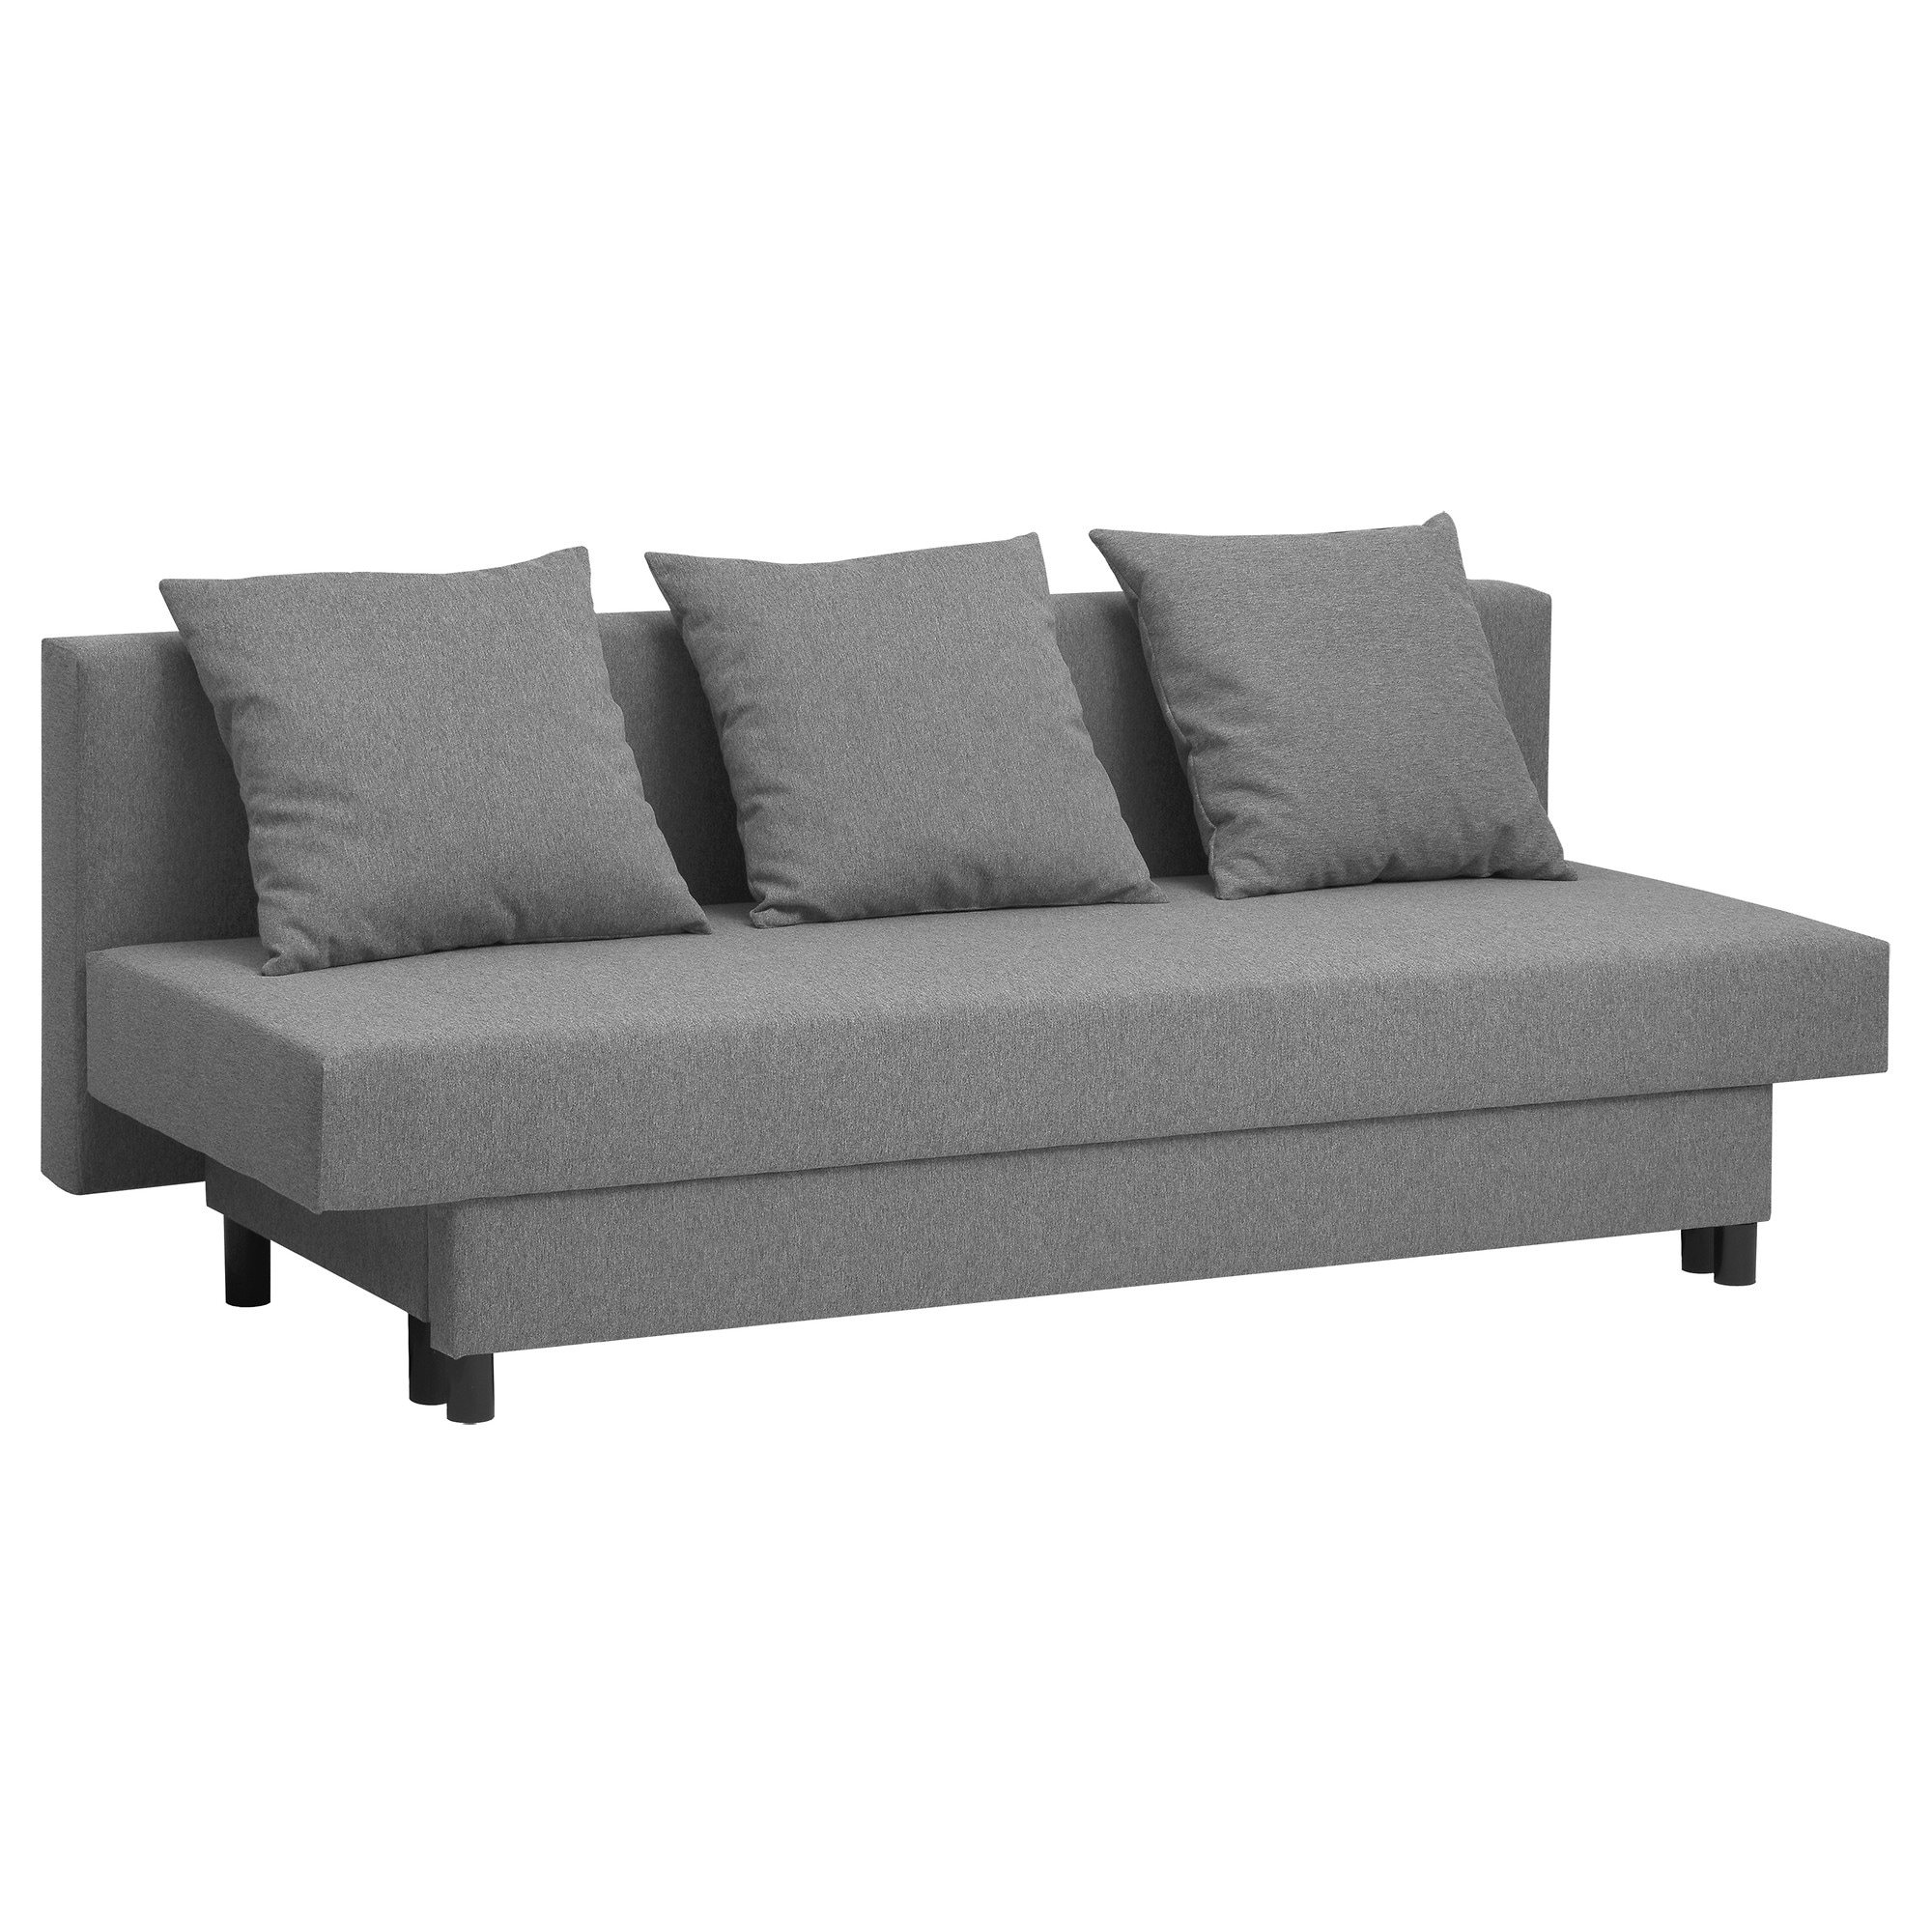 Sofas Cama De Ikea 87dx asarum Three Seat sofa Bed Grey Ikea